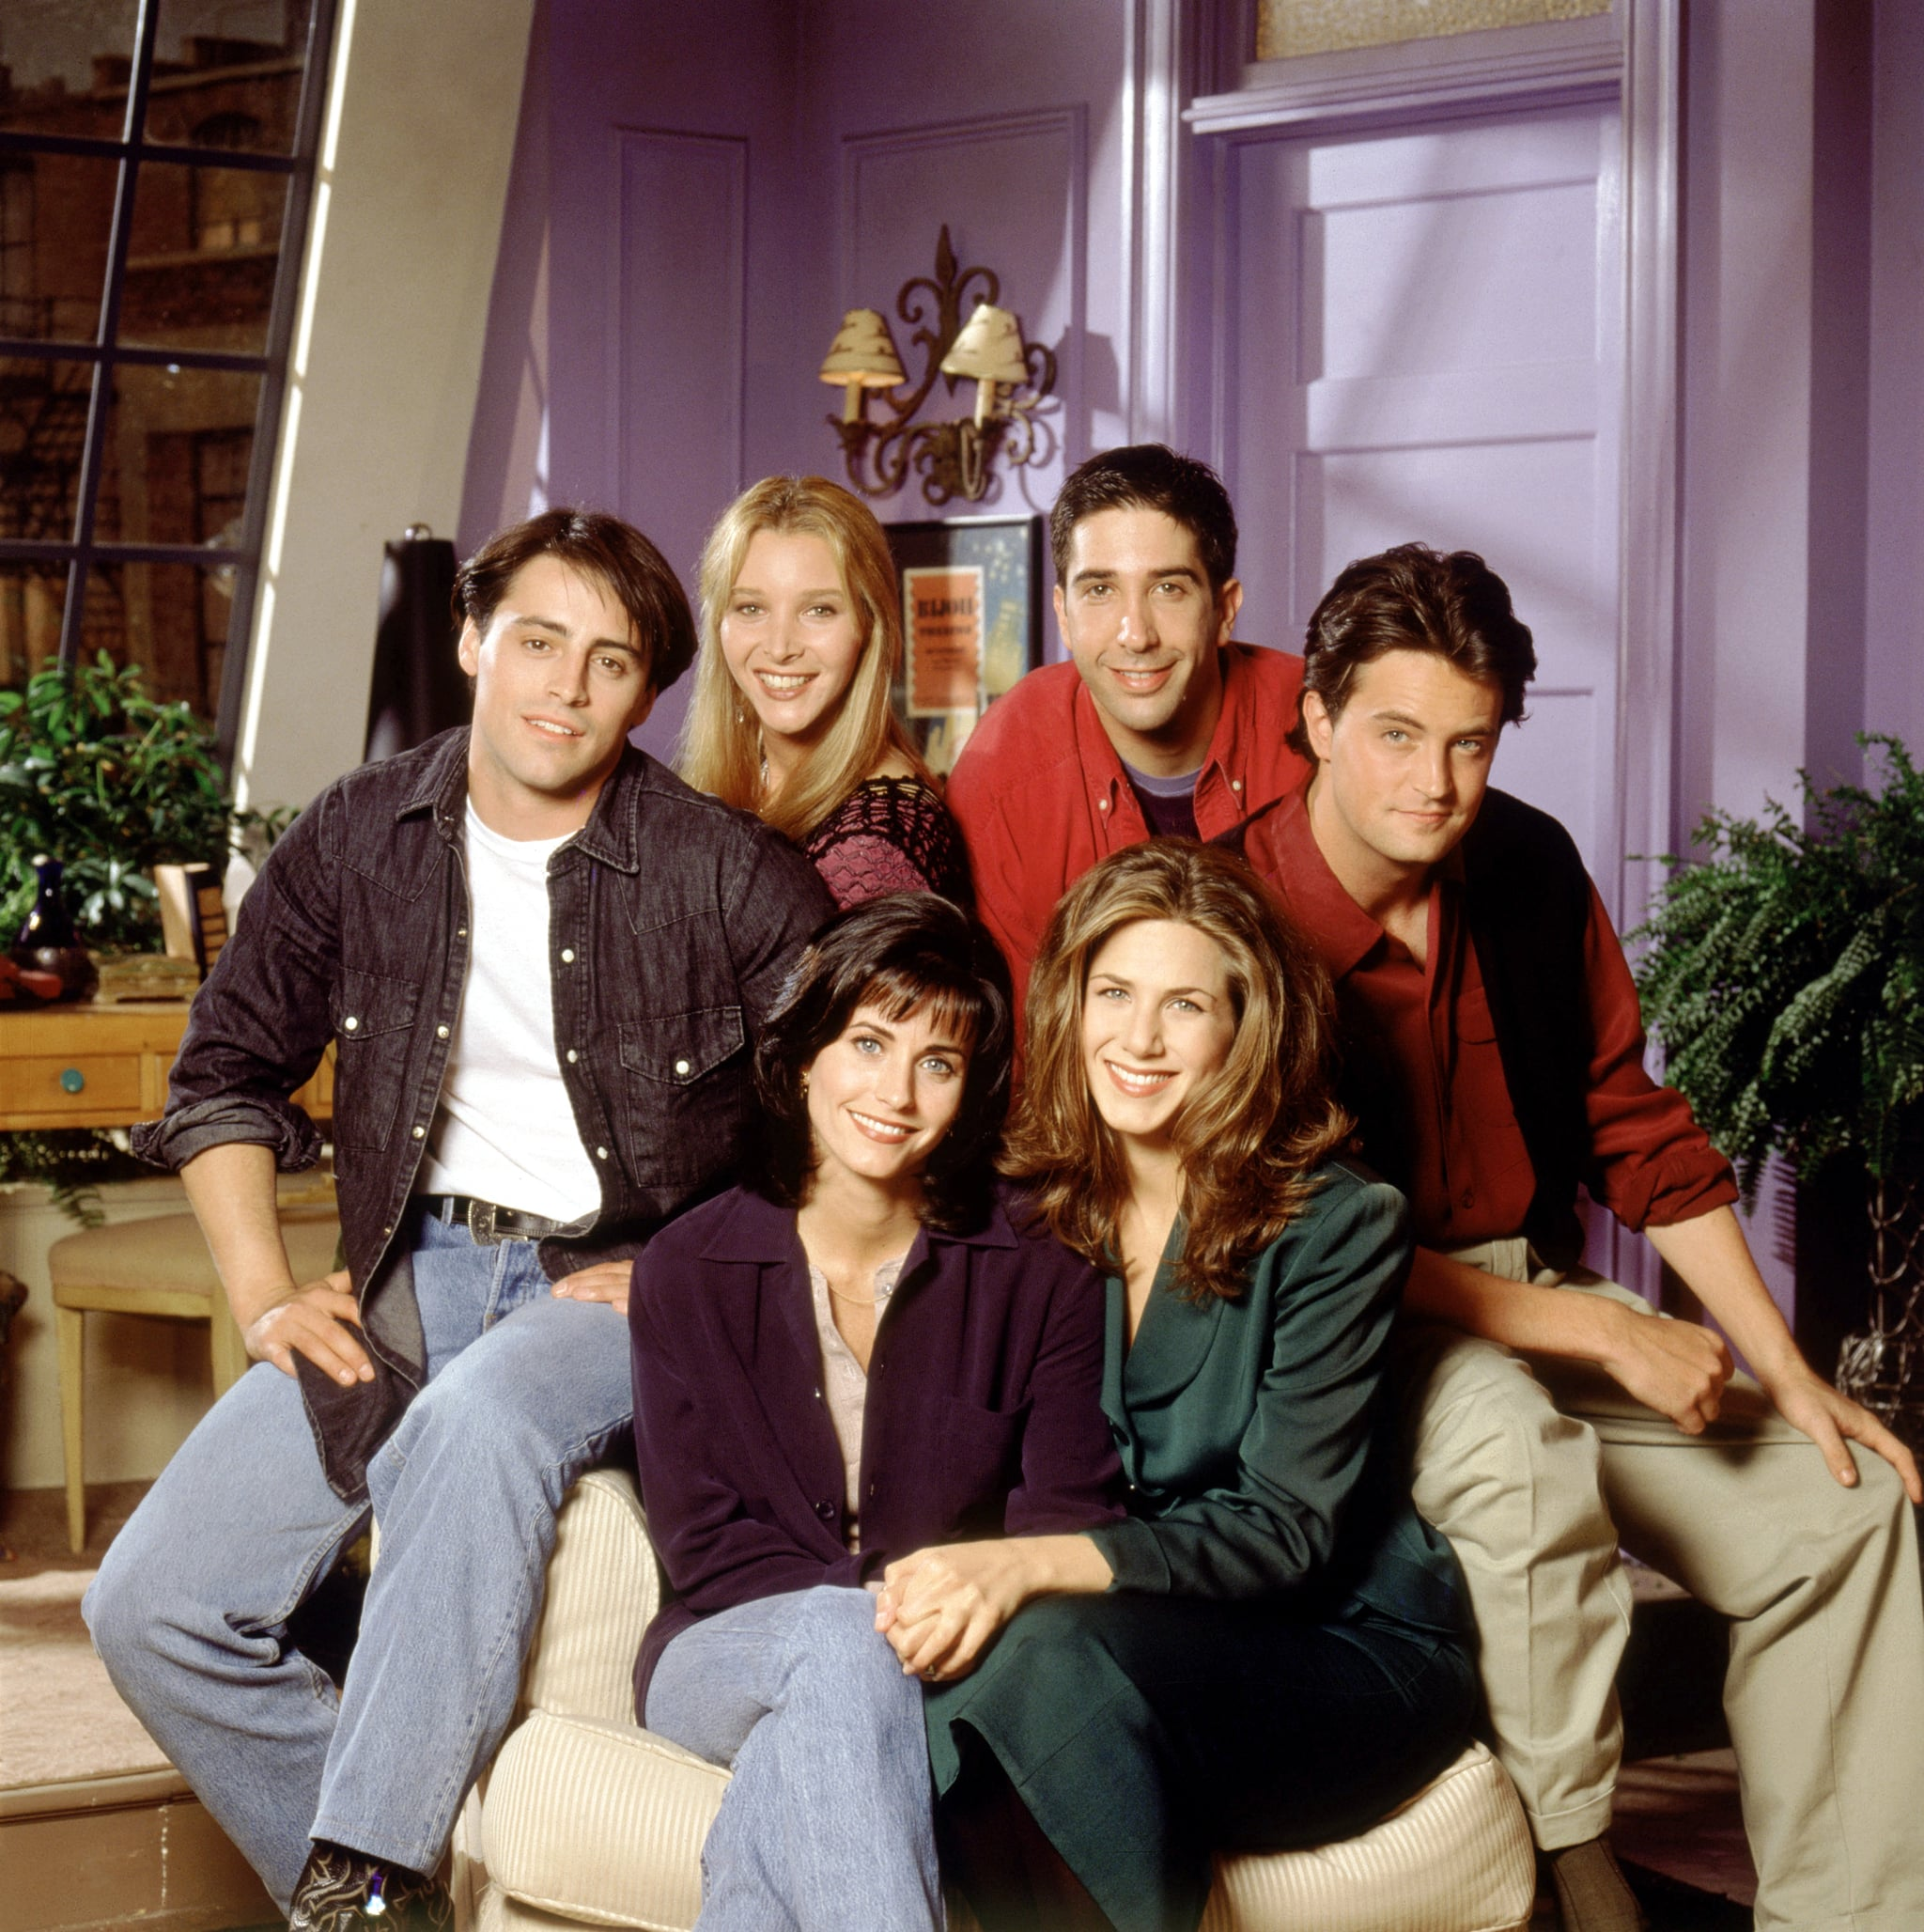 FRIENDS, (back, l to r): Matt LeBlanc, Lisa Kudrow, David Schwimmer, Matthew Perry, (front, l to r): Courteney Cox, Jennifer Aniston, (Season 1), 1994-2004,  Warner Bros. / Courtesy: Everett Collection